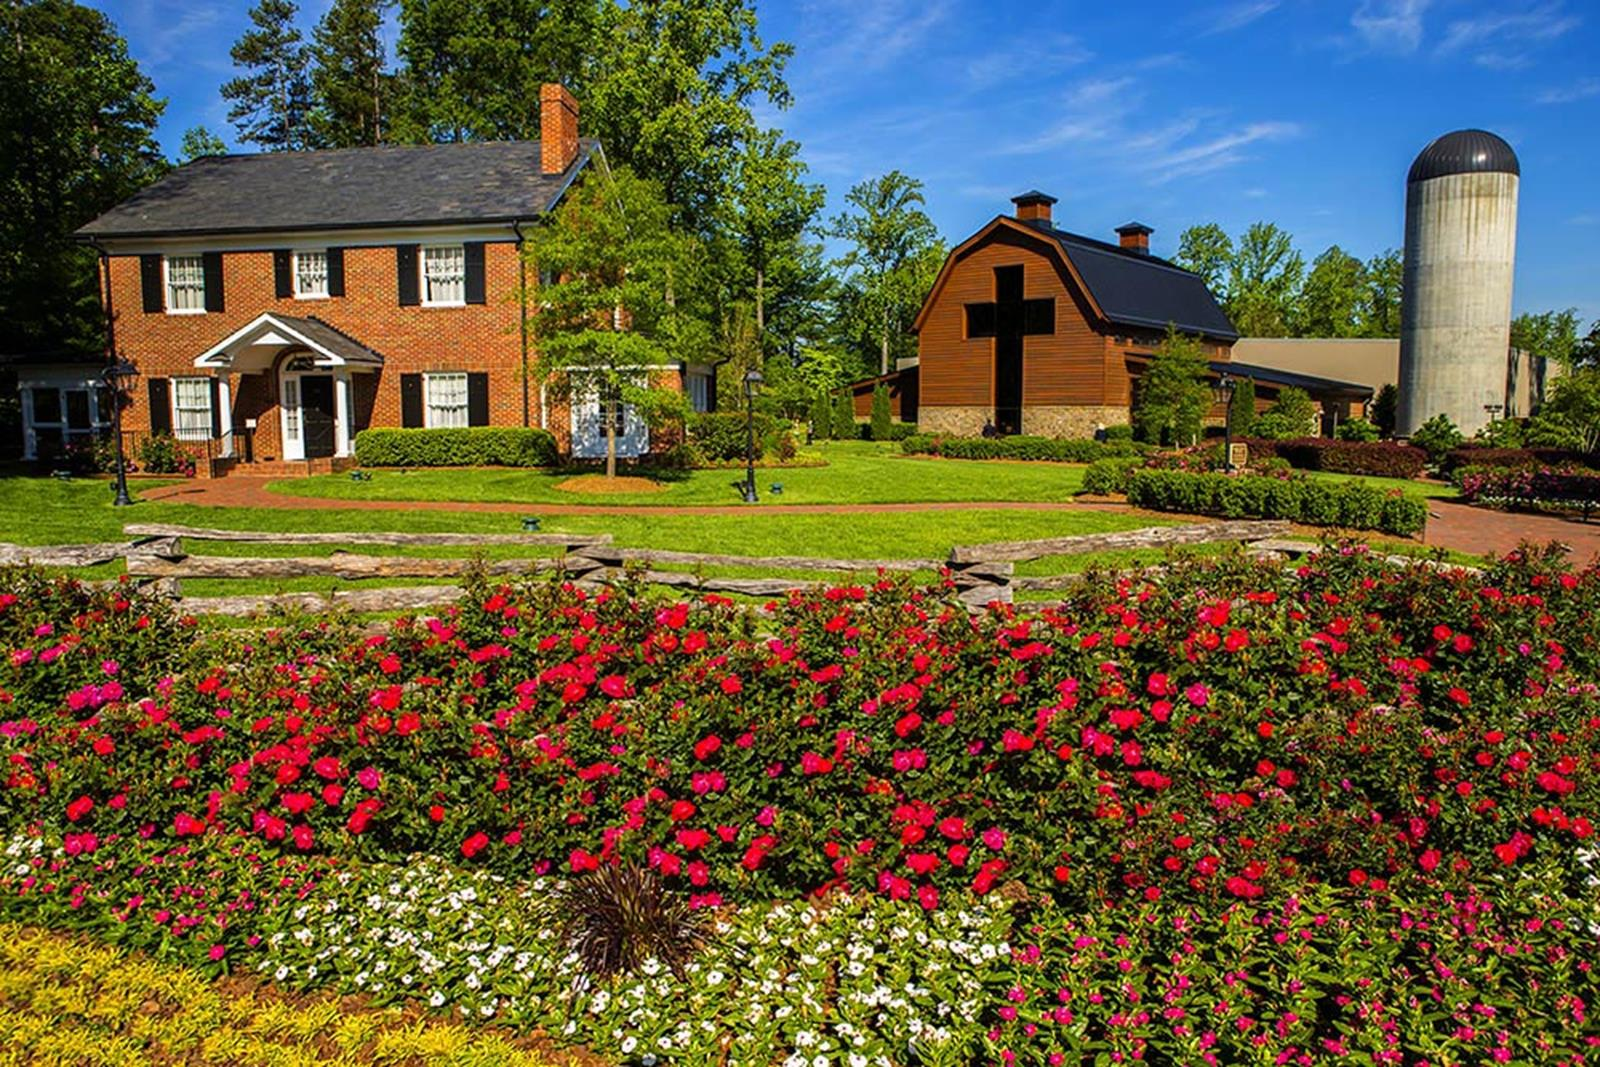 The Library grounds include the Graham family homeplace (left), the main facility (center), and the memorial prayer garden.